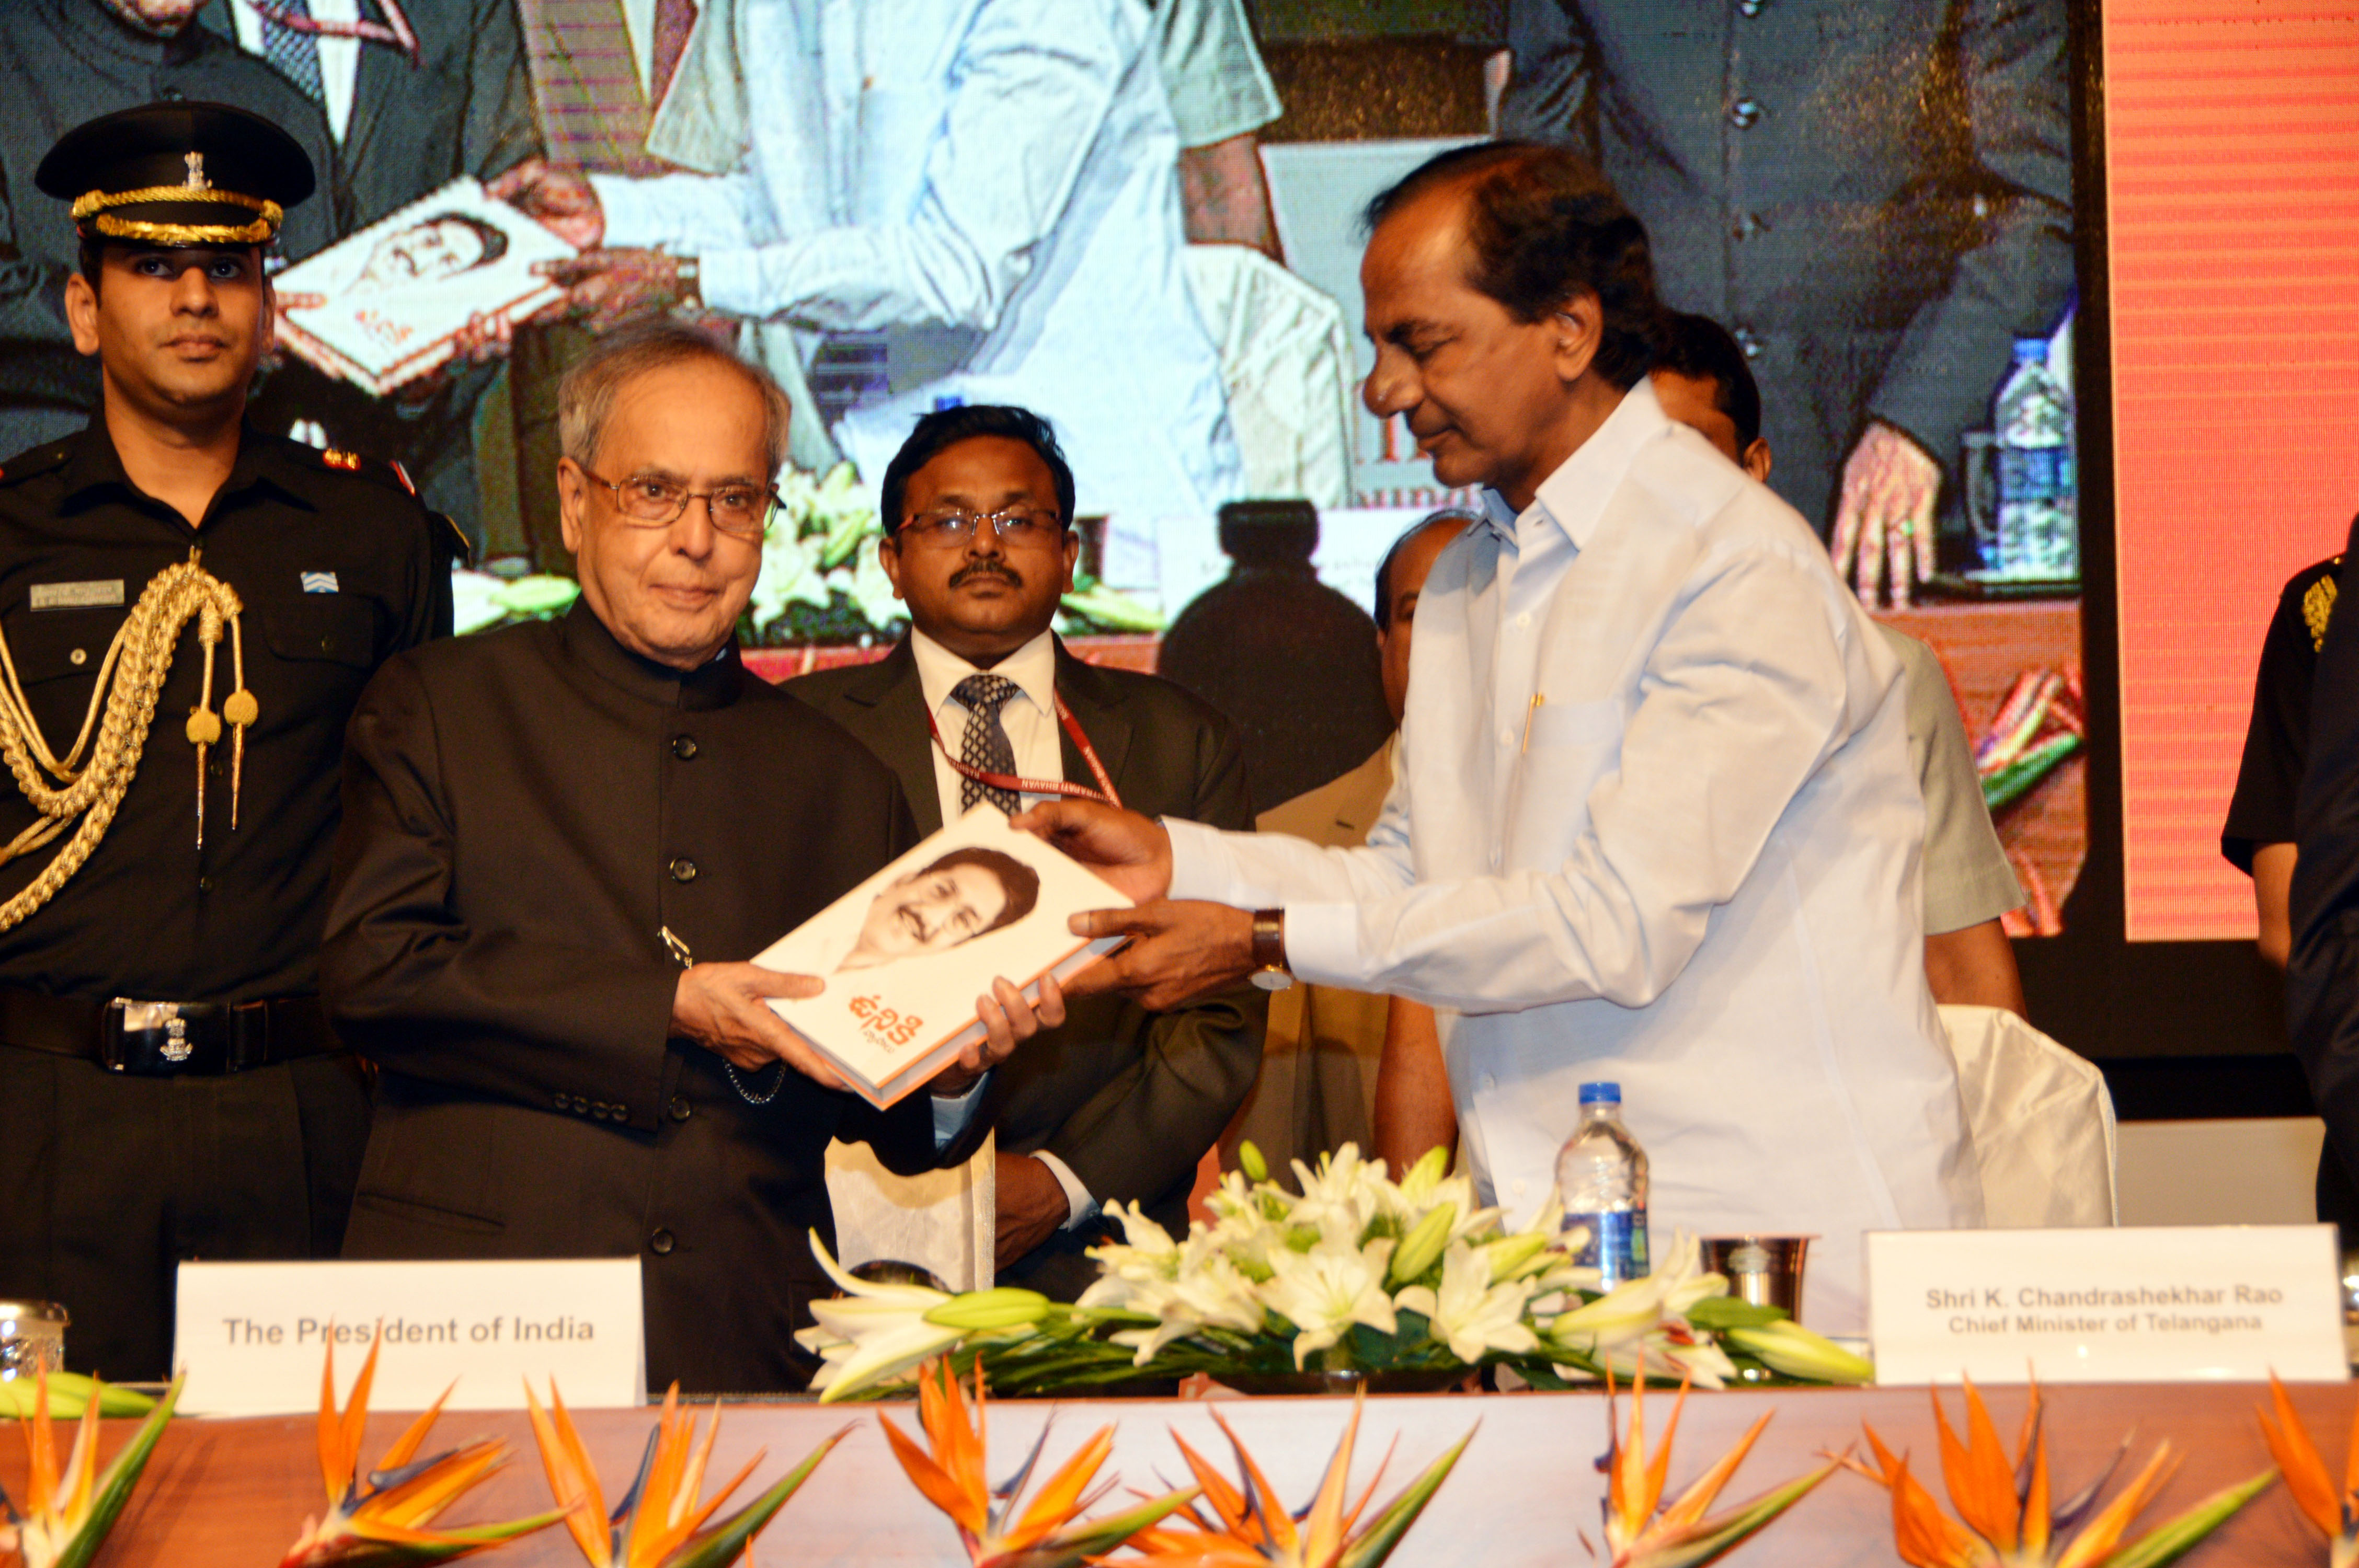 K.Chandrashekar Rao, Chief Minister of Telangana presenting the first copy of UNIKI authored by CH.Vidyasagar Rao, Hon ble Governor of Maharashtra to Pranab Mukherjee, Hon ble President of India at HICC on 03.07.2015.